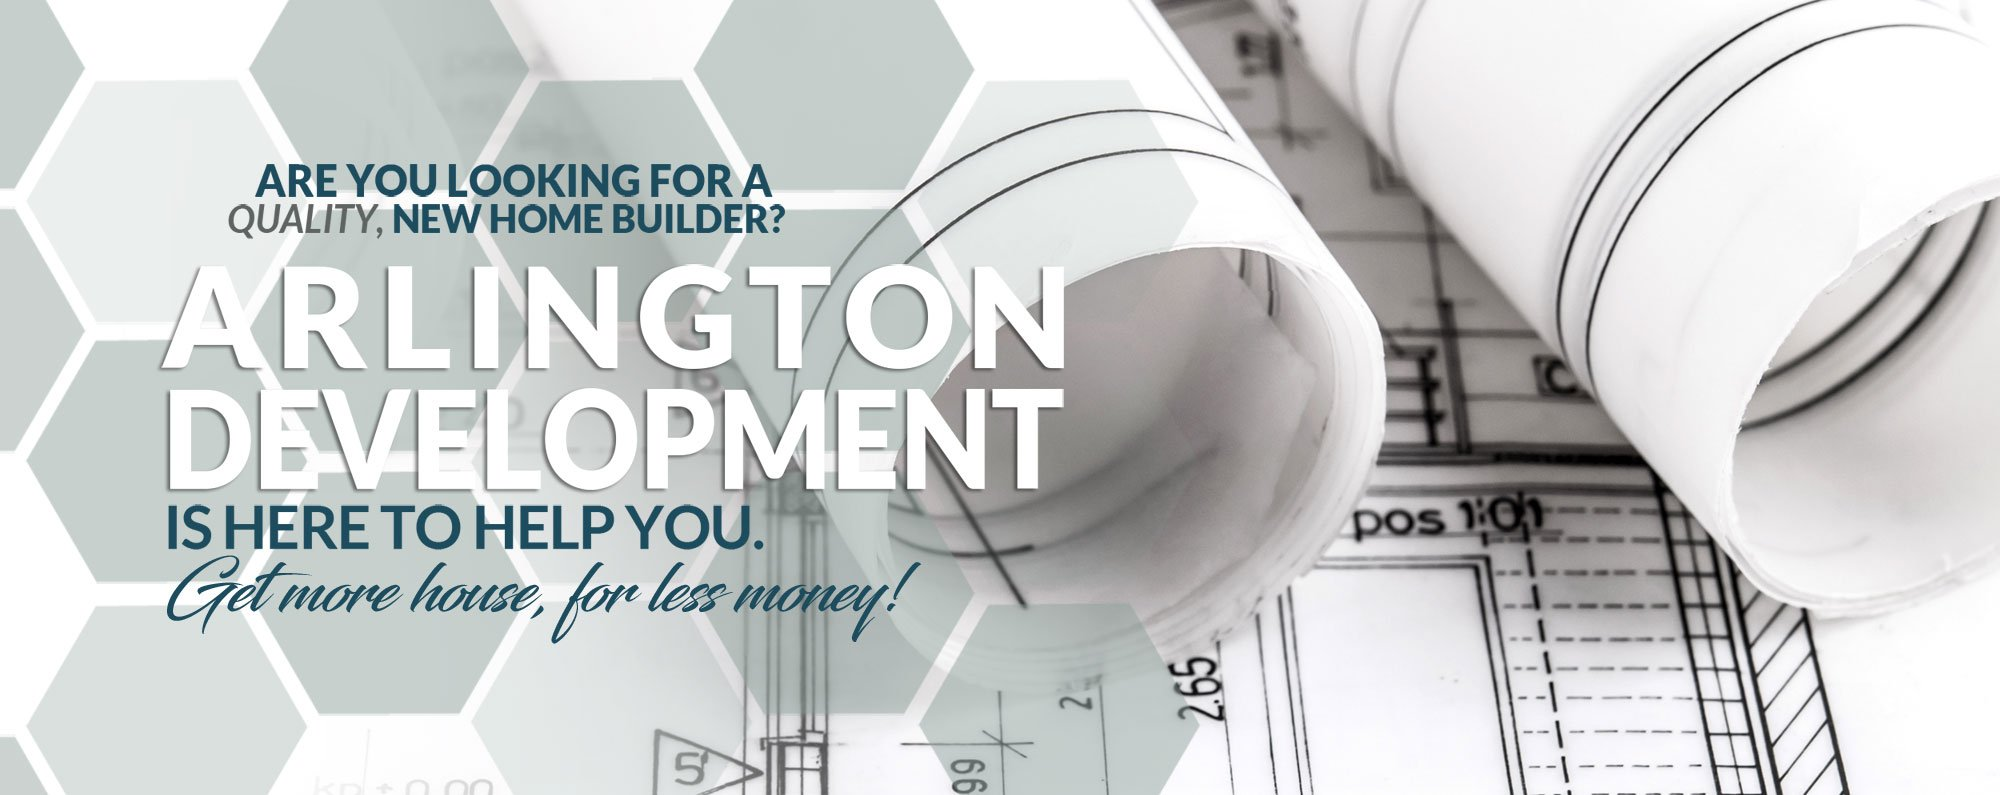 Arlington Development is here to help you.